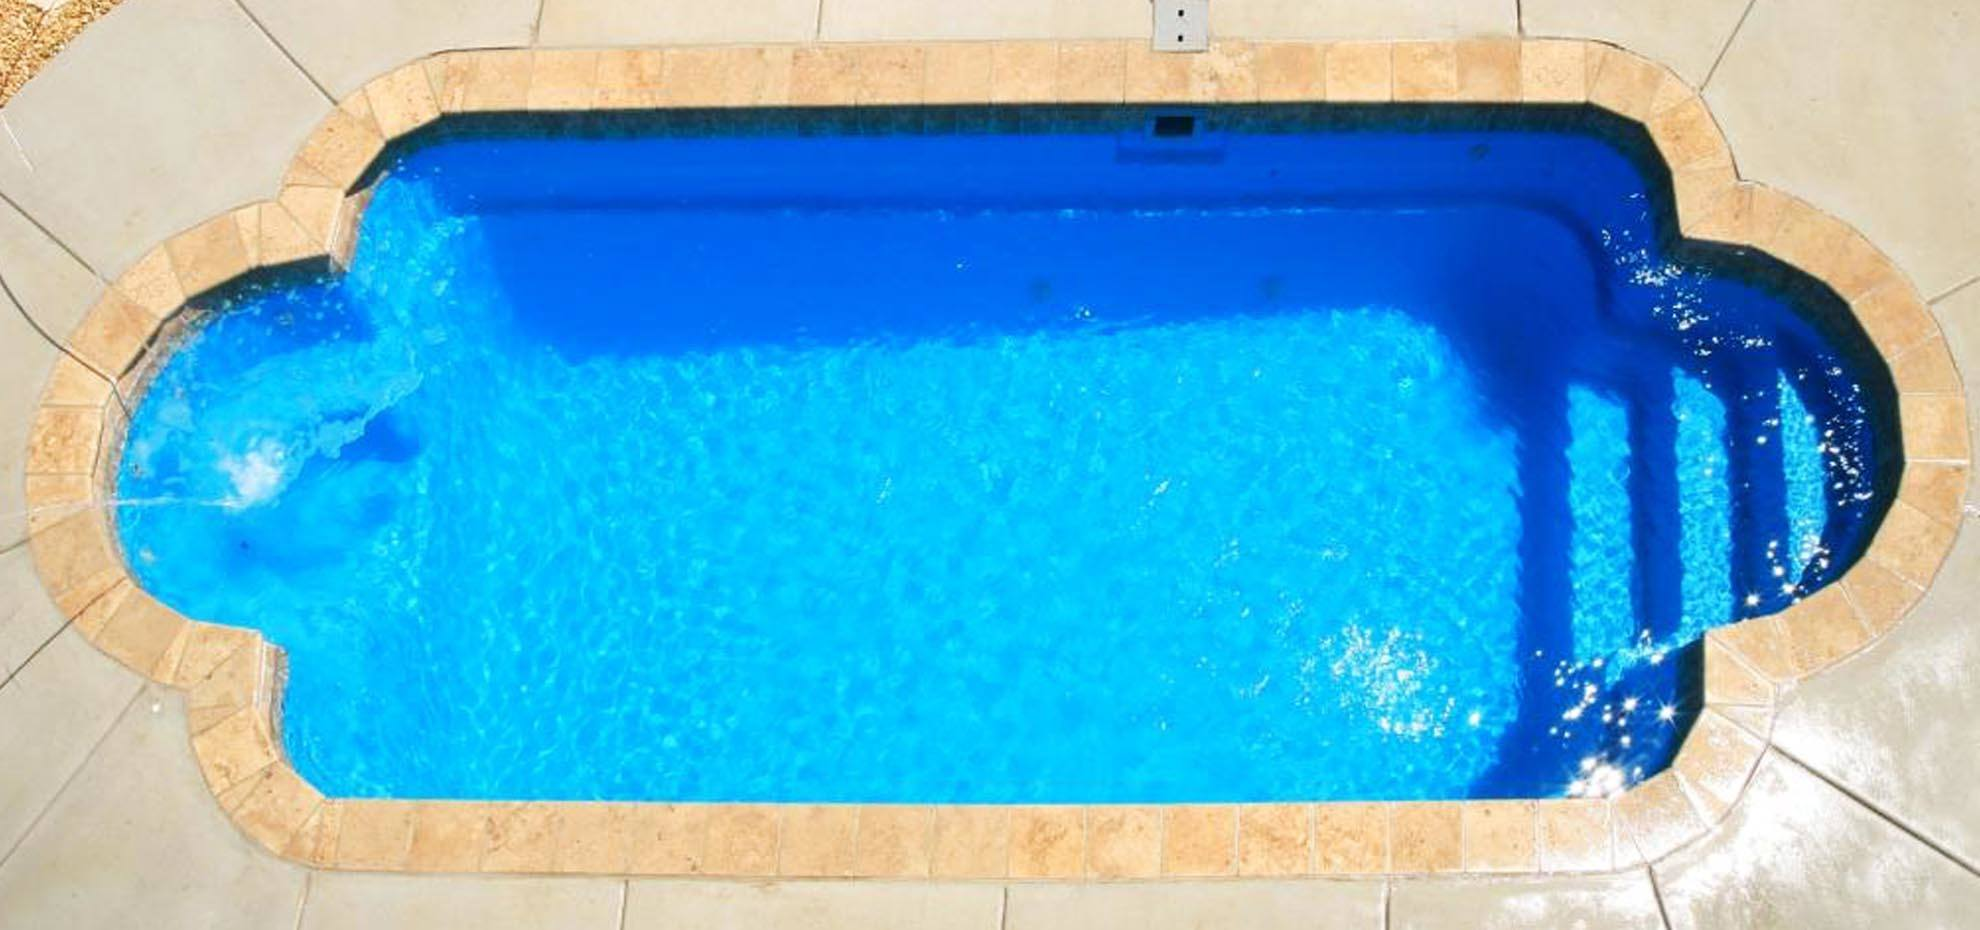 Roman style fibreglass pool with coping by Leisure Pools